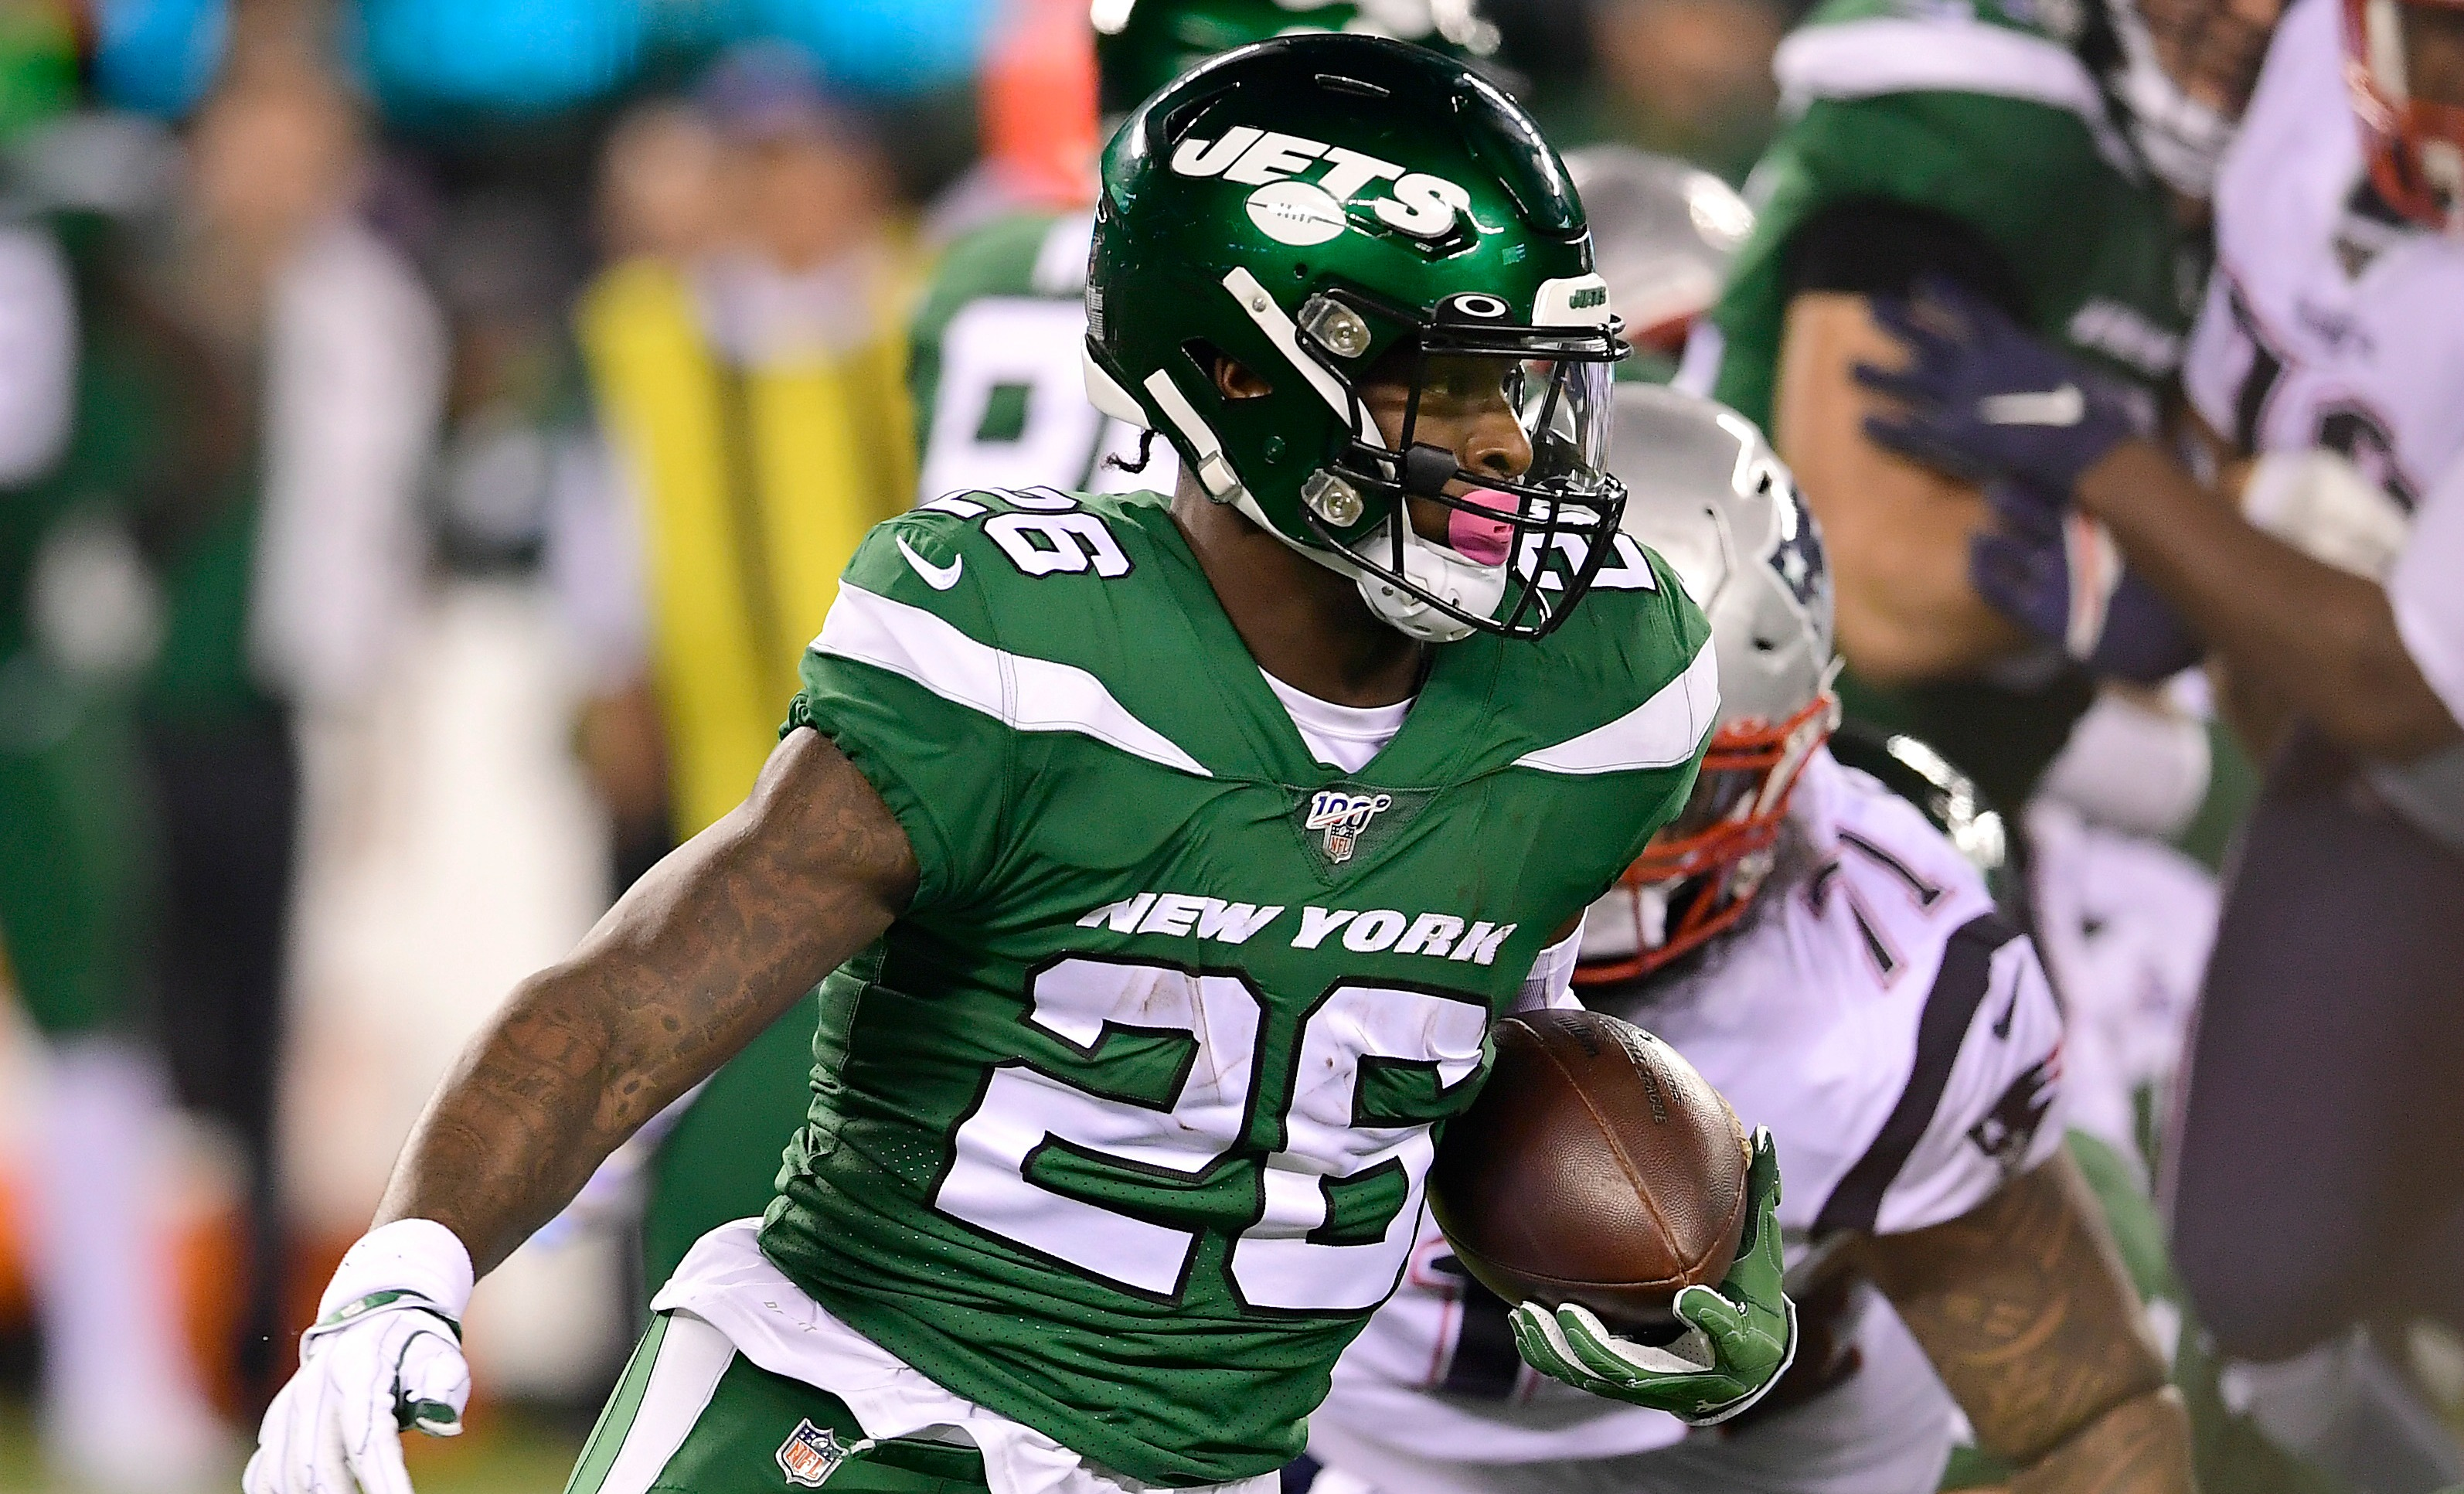 Jets' Bell Rips NFL After 5th 'Random' HGH Test, Refuses To Take Another Drug Test This Season